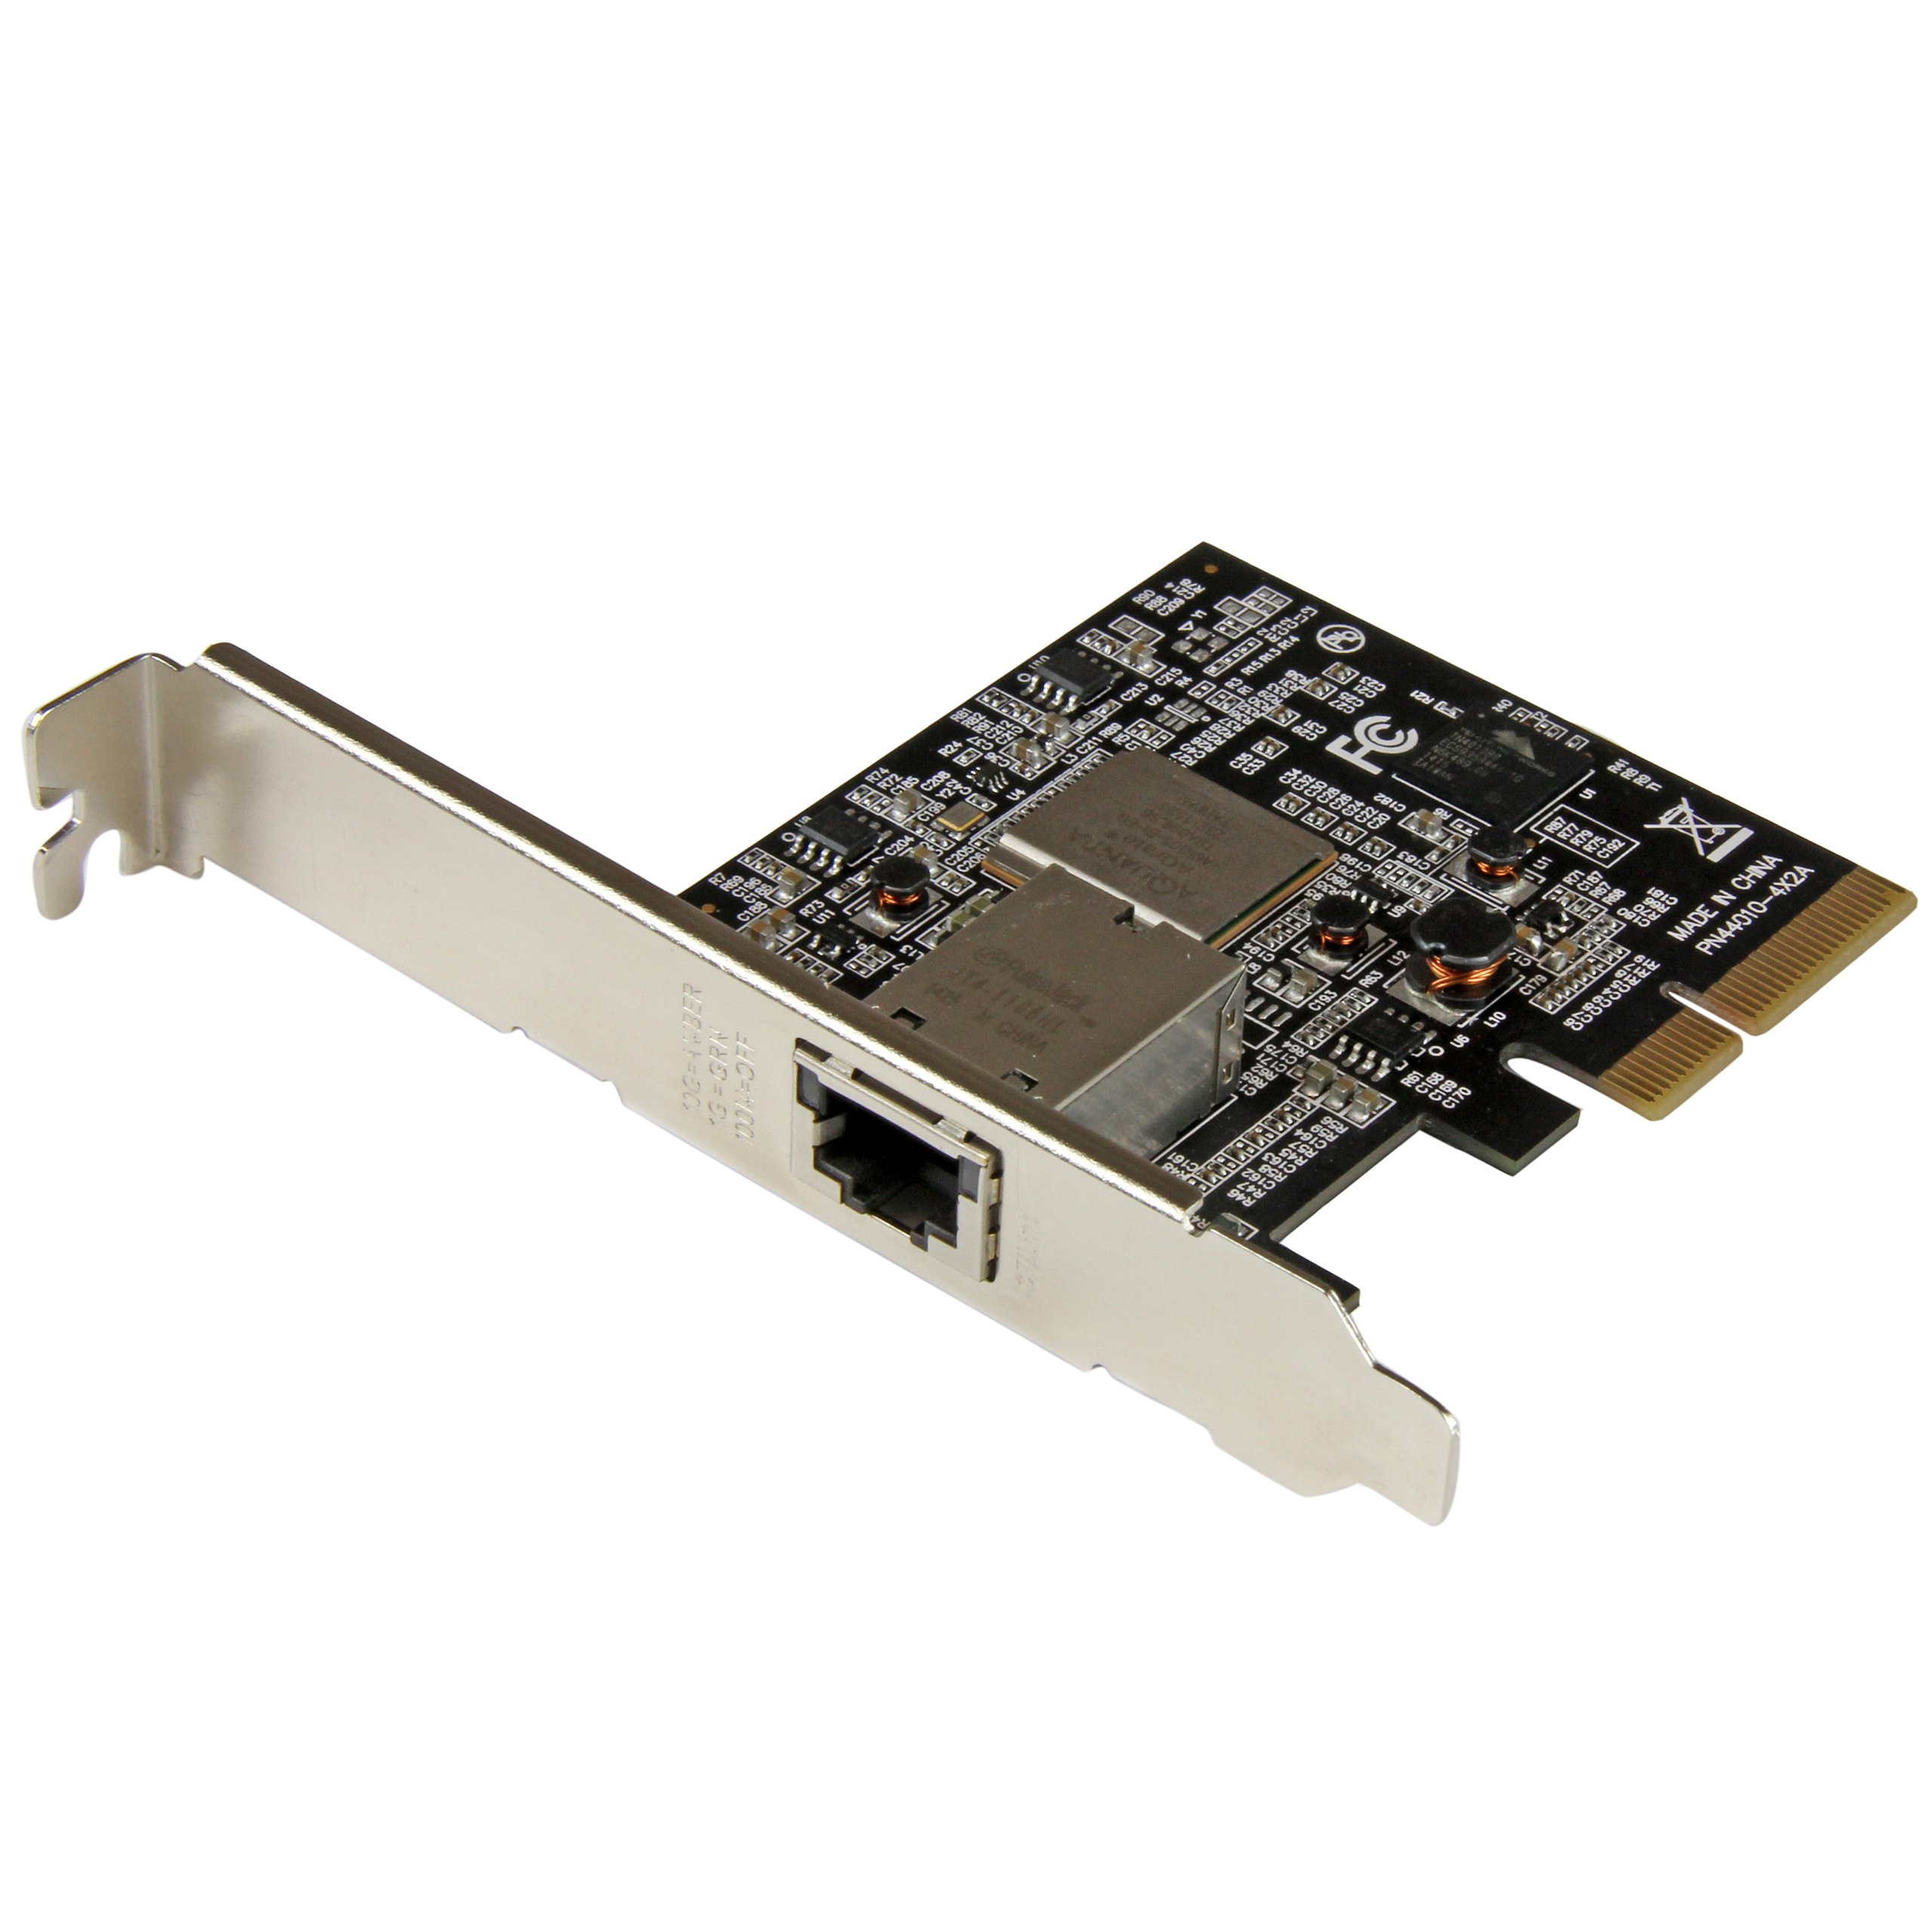 StarTech.com ST10GSPEXNB 1 Port PCI Express 10GBase-T / NBASE-T Ethernet Network Card, 5-Speed, PCIe 2.0 x4